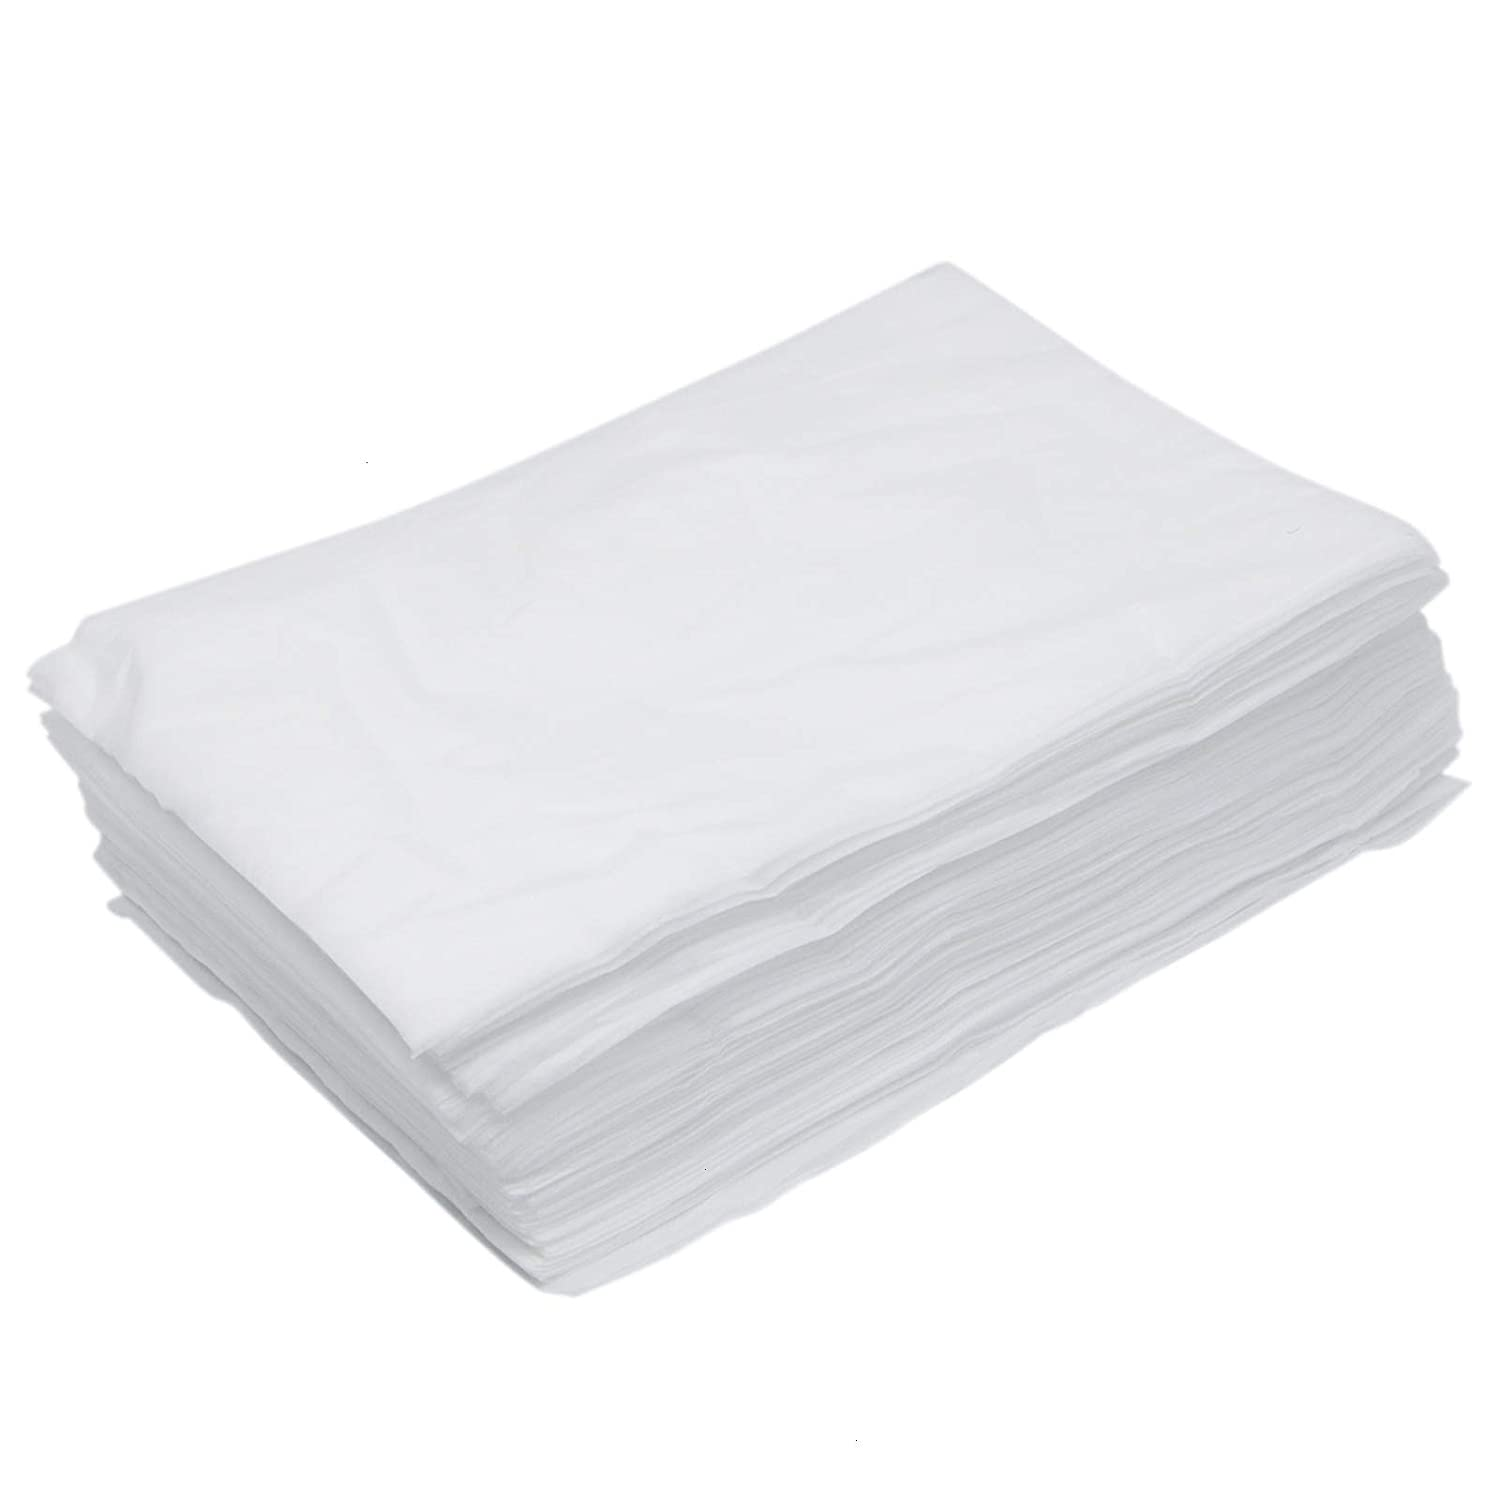 225 & AQUEENLY Spa Bed Sheets Disposable Massage Table Sheet Waterproof Bed Cover Non-Woven Fabric 27\